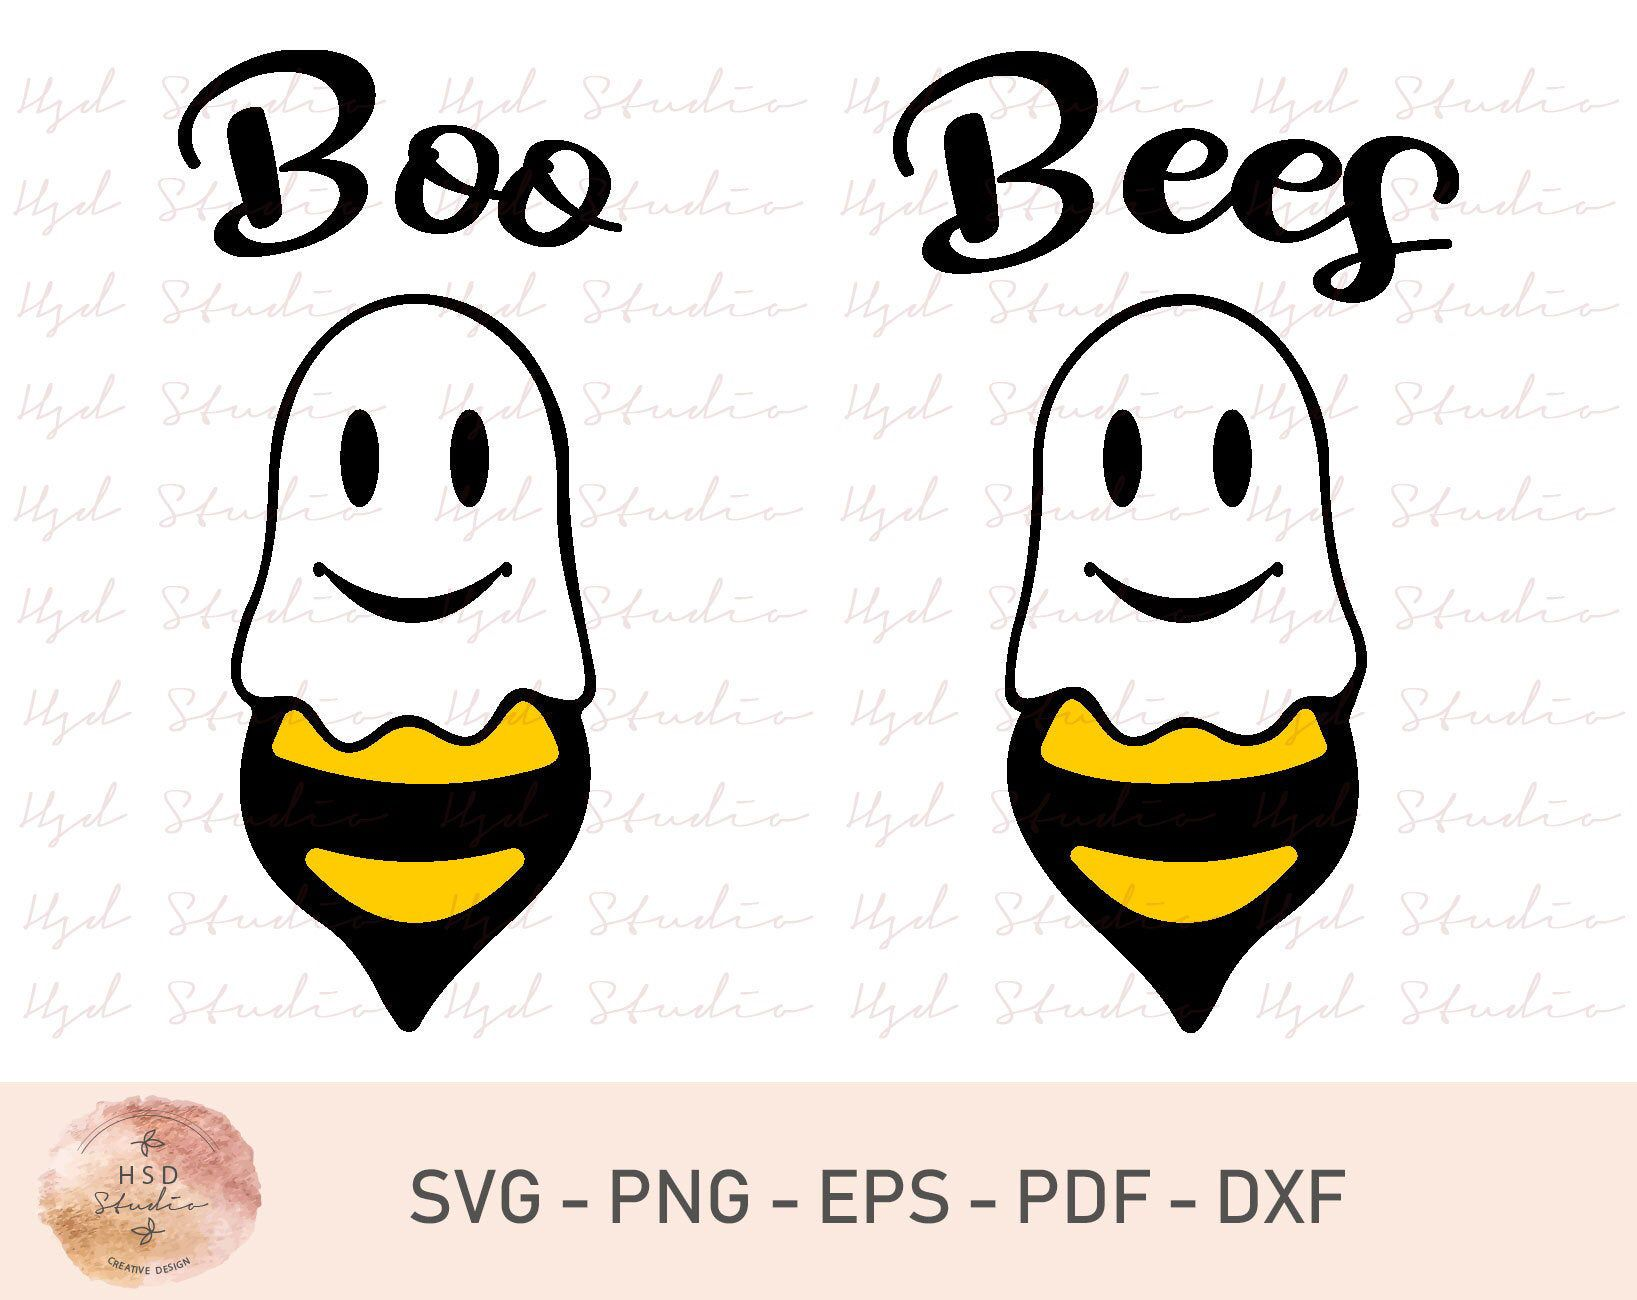 Halloween SVG, Boo SVG, Ghost SVG, Boo Bees Svg, Funny